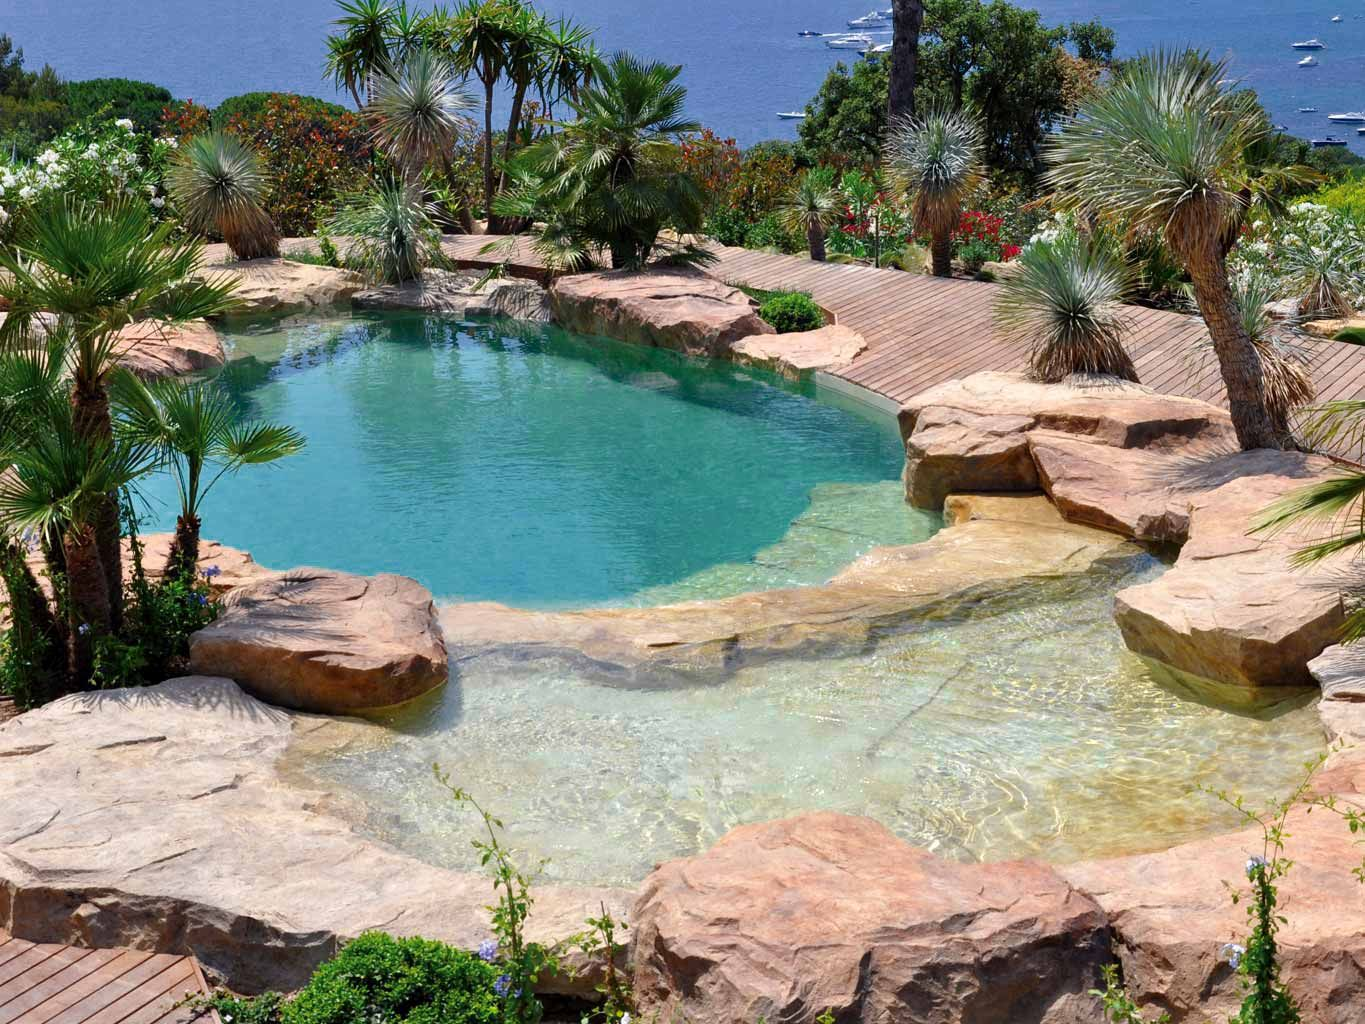 Good 10waterworld piscine creusee dans les rochers natural for Design piscine